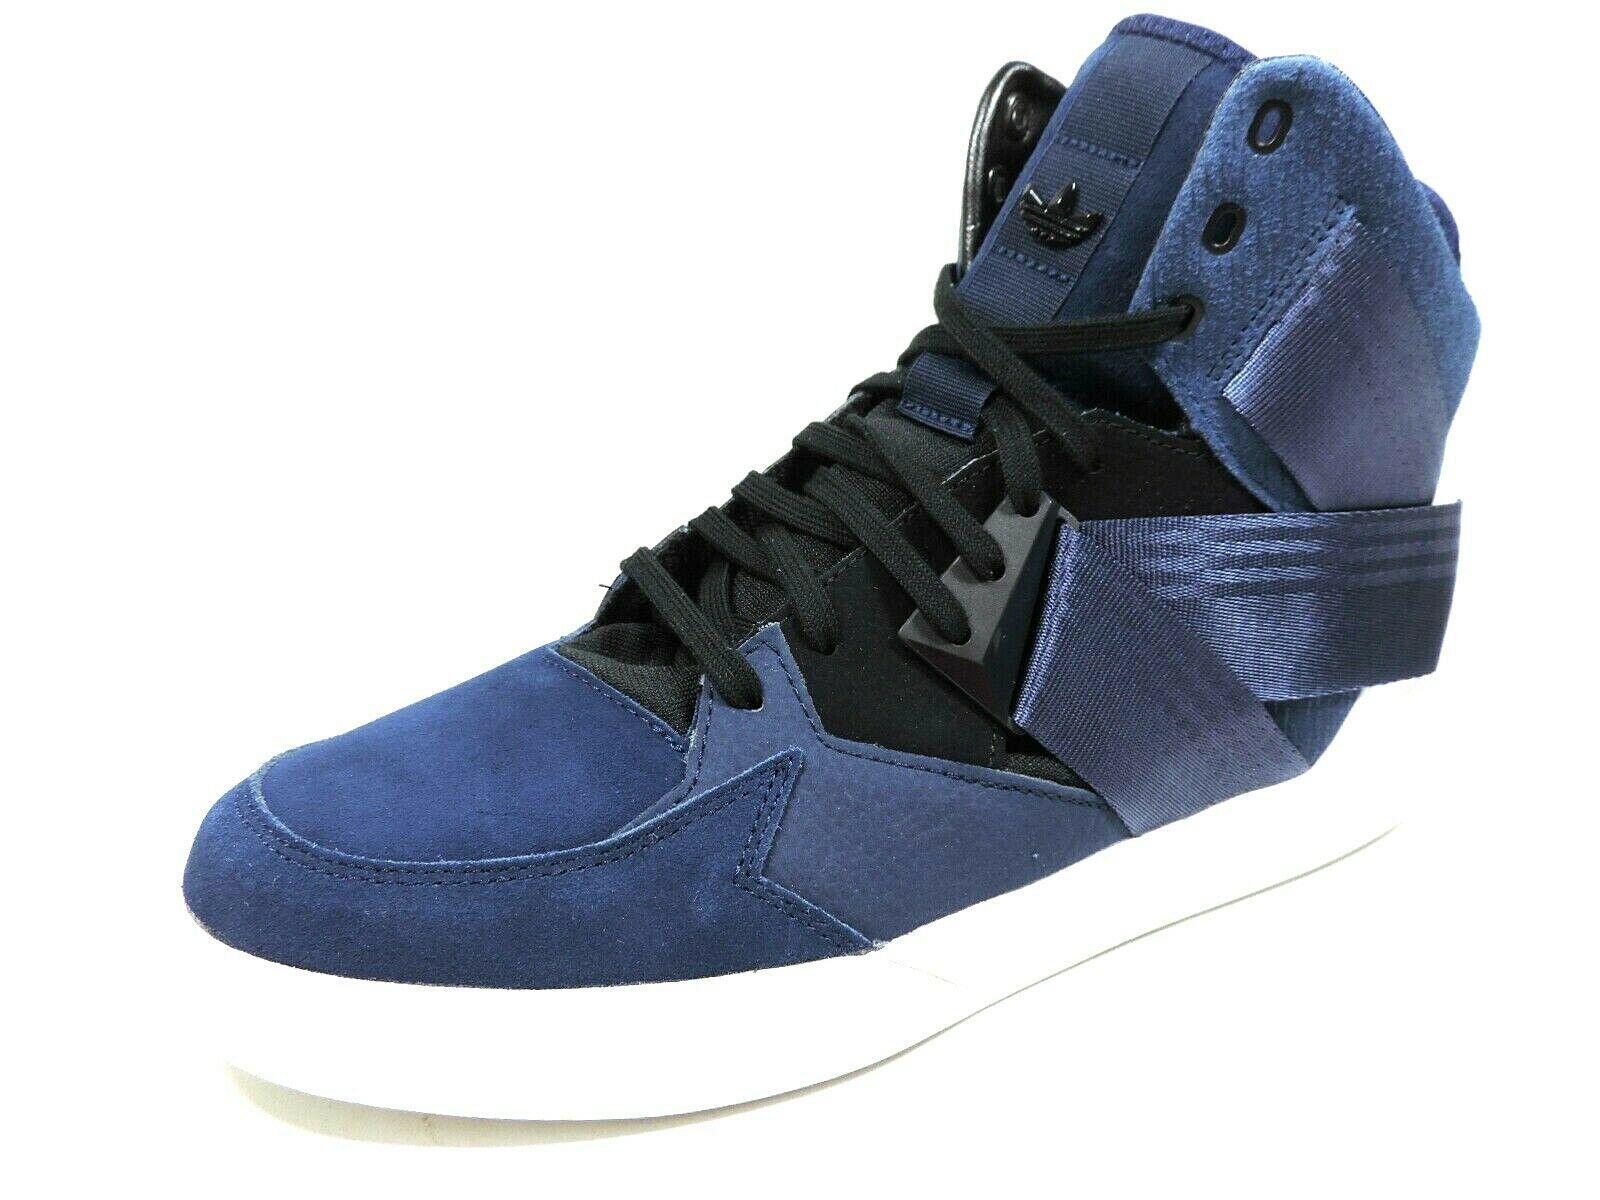 Adidas C-10 Mens Shoes C75338 Basketball Sneakers Leather Blue White High Top